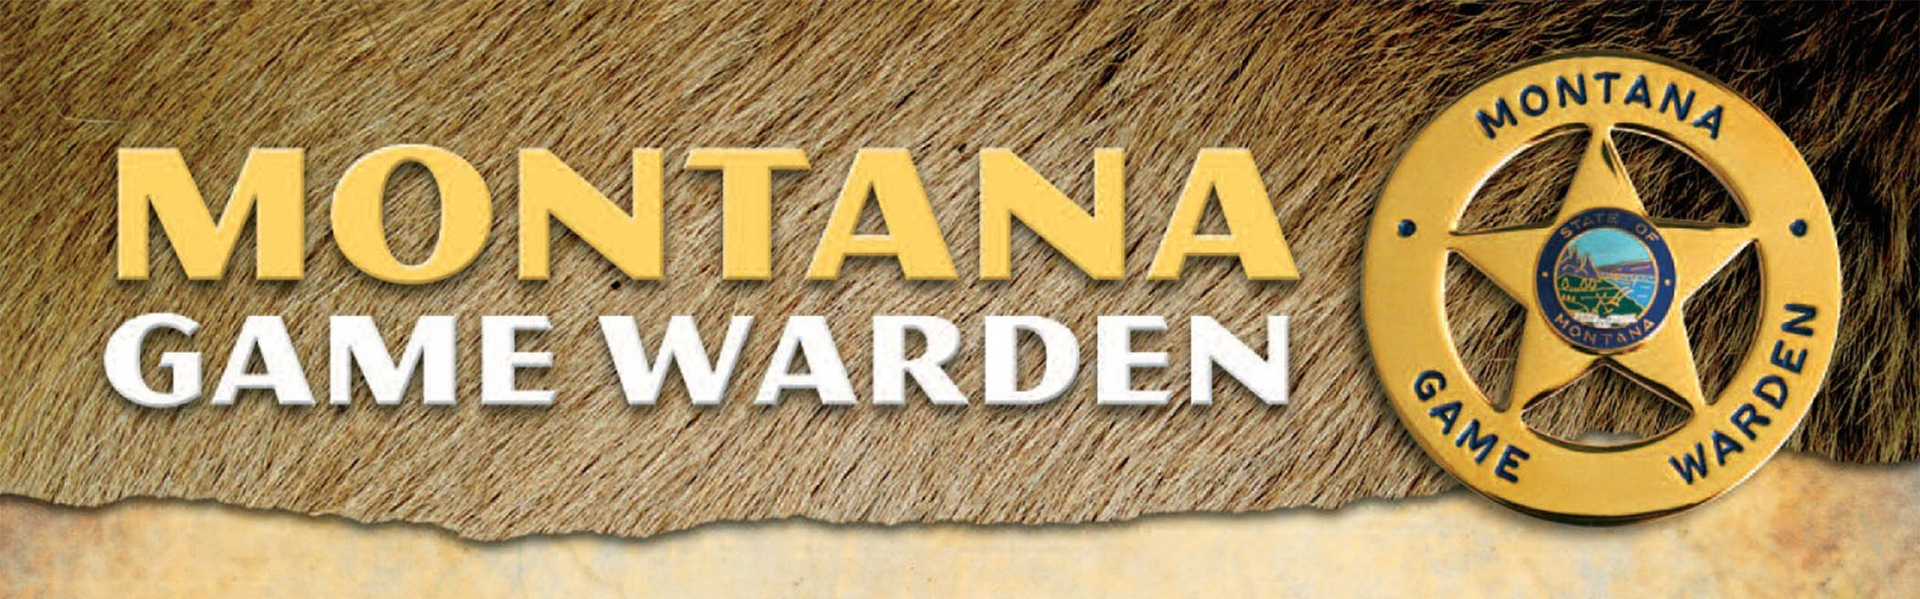 Montana Game Warden Oath of Office